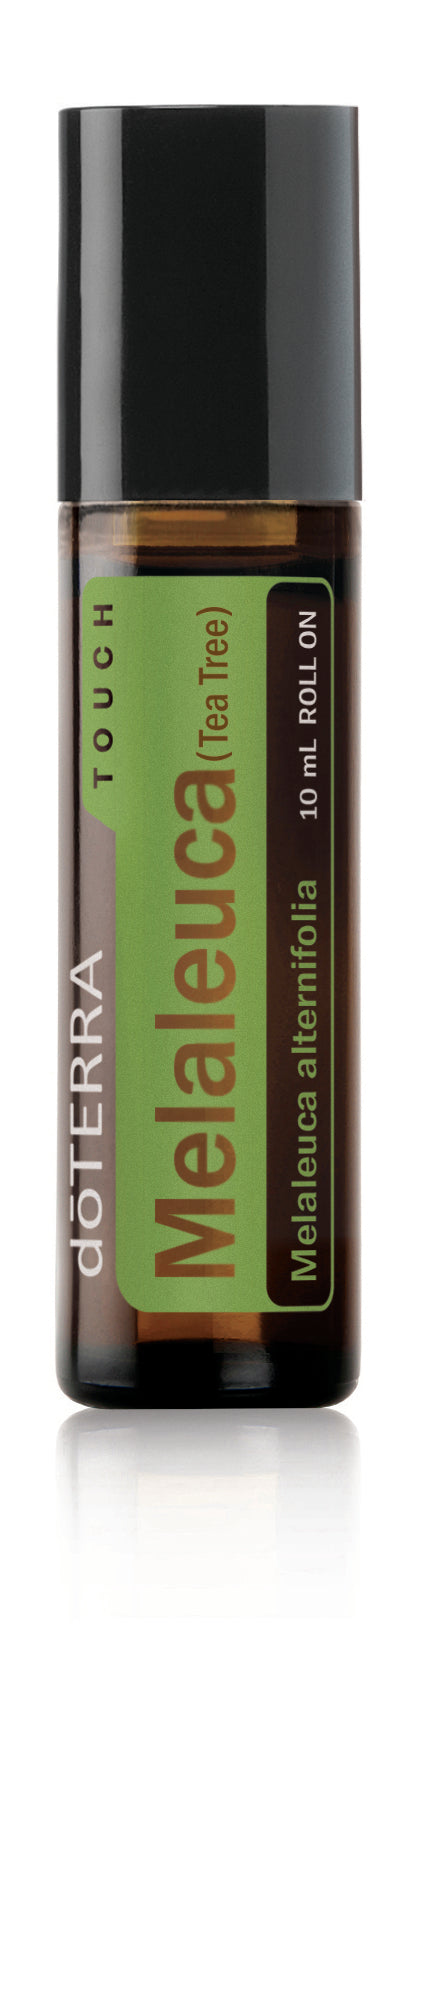 doTERRA Melaleuca Touch Essential Oil